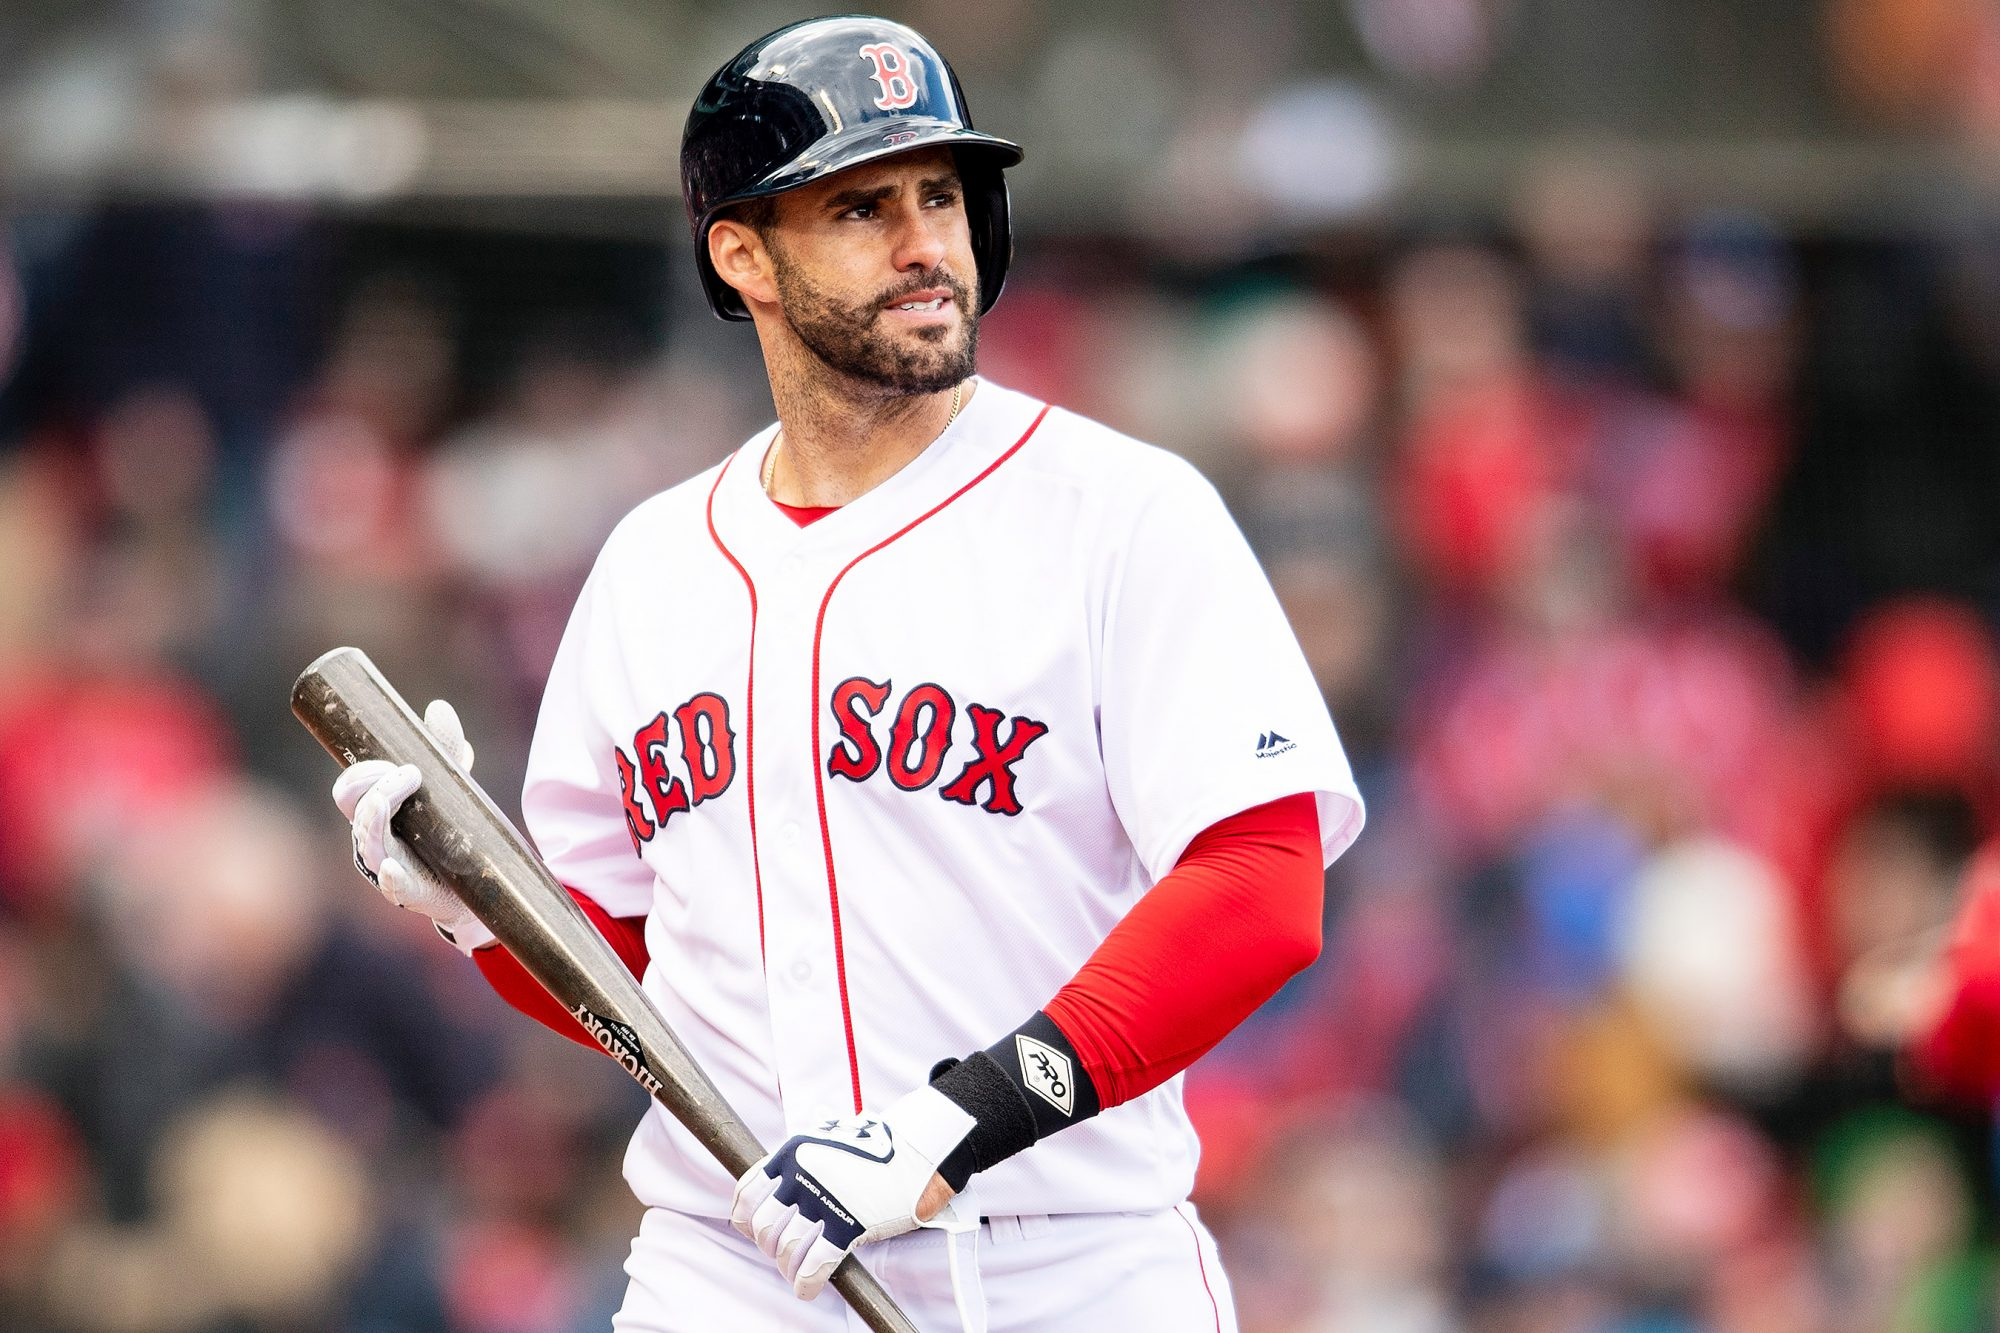 BOSTON RED SOX 2021 PREVIEW: ALTERNATIVE FANTASY MLB OUTLOOK